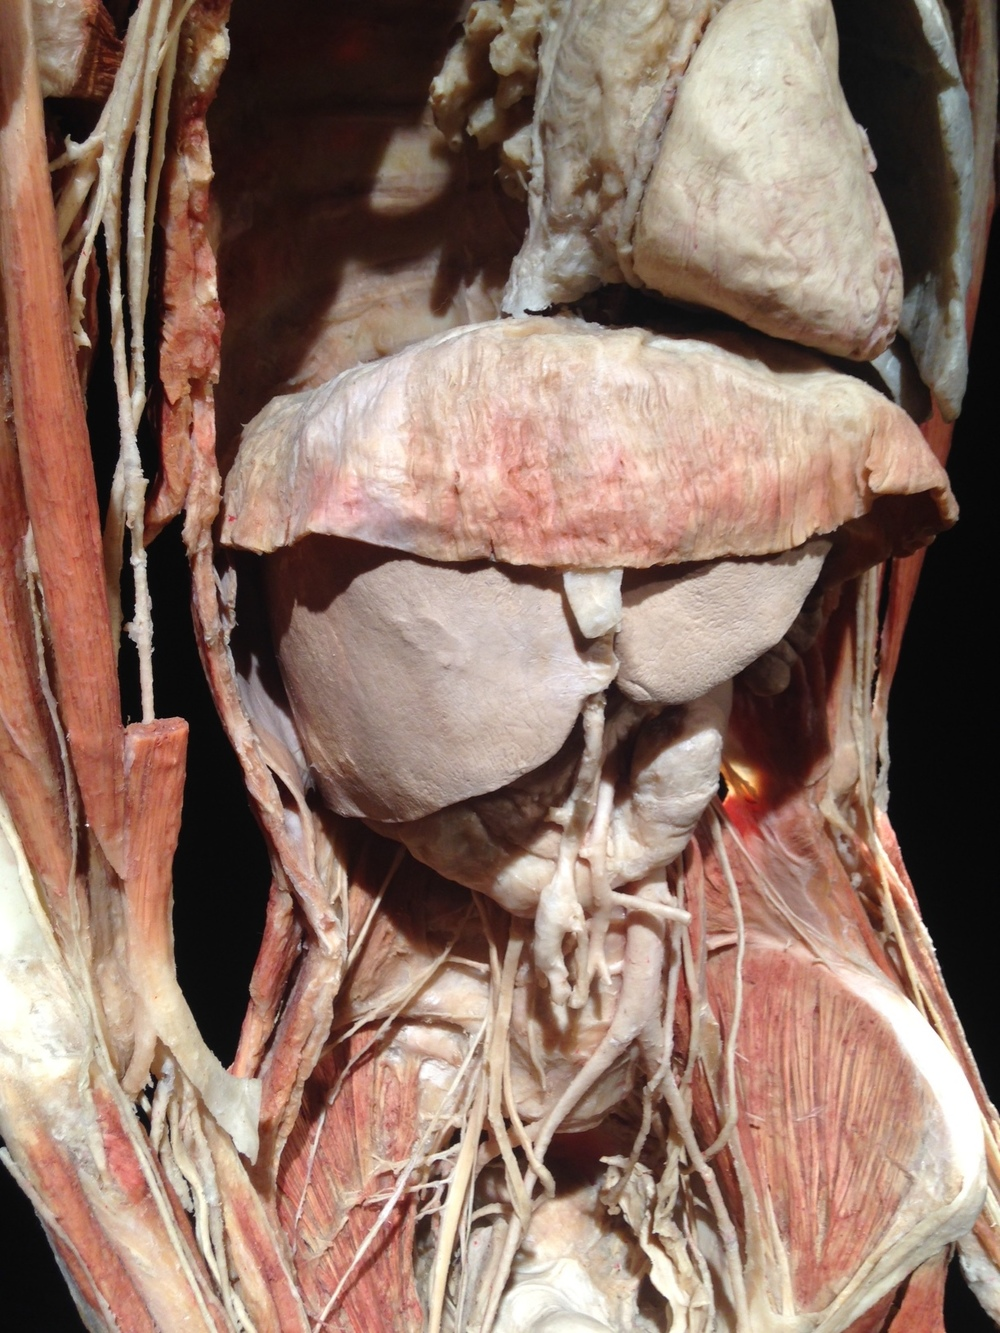 It was enlightening to see how all of our internal organs fit together so neatly and compactly.